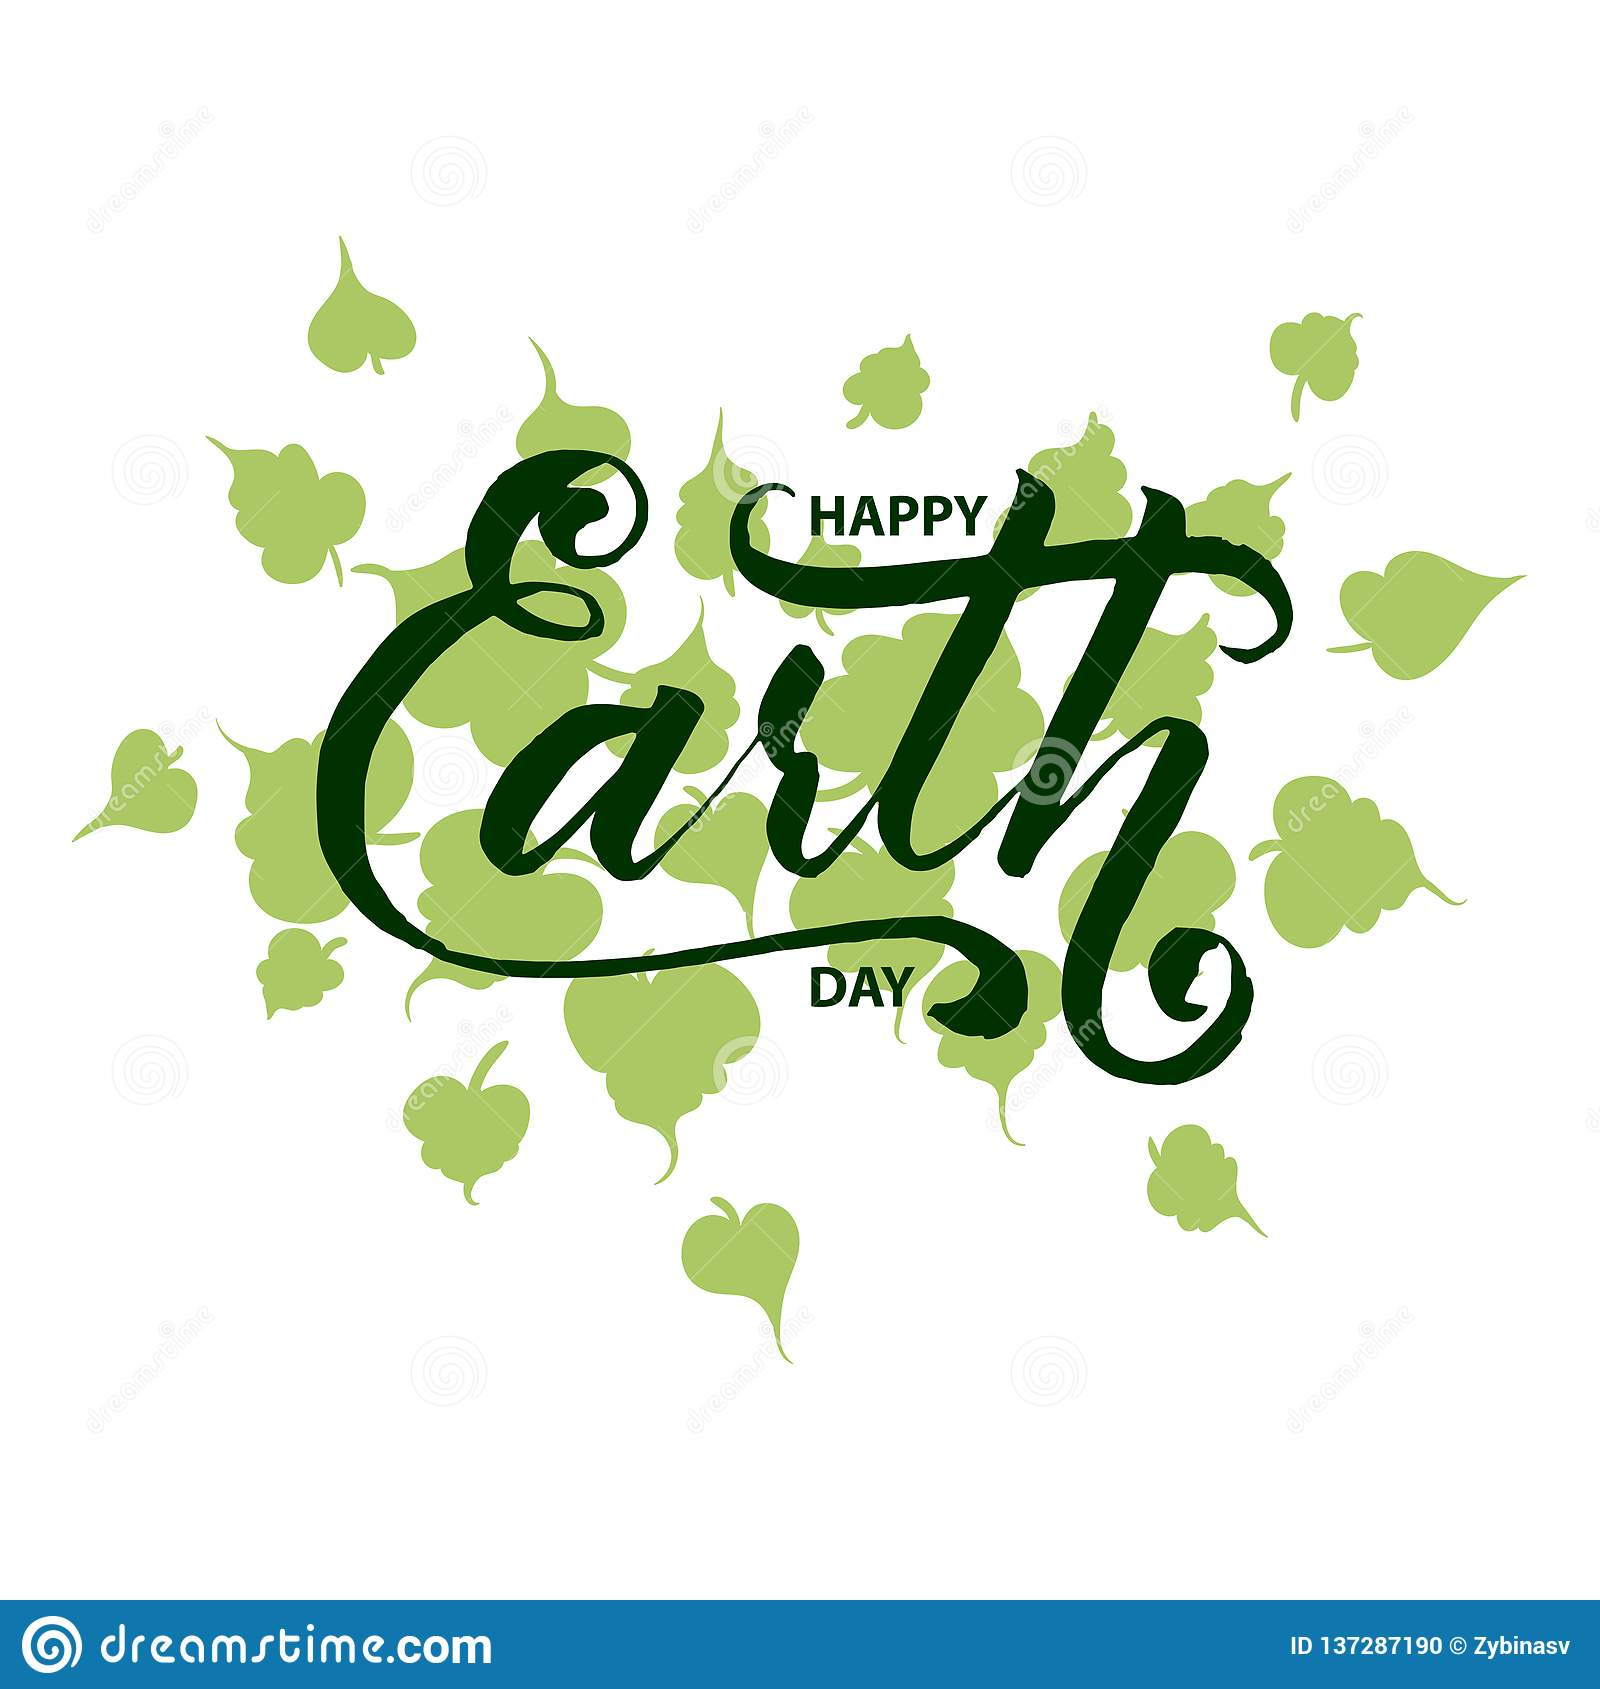 Happy Earth day hand lettering card, background. Vector illustration with leaves for poster, greeting card.